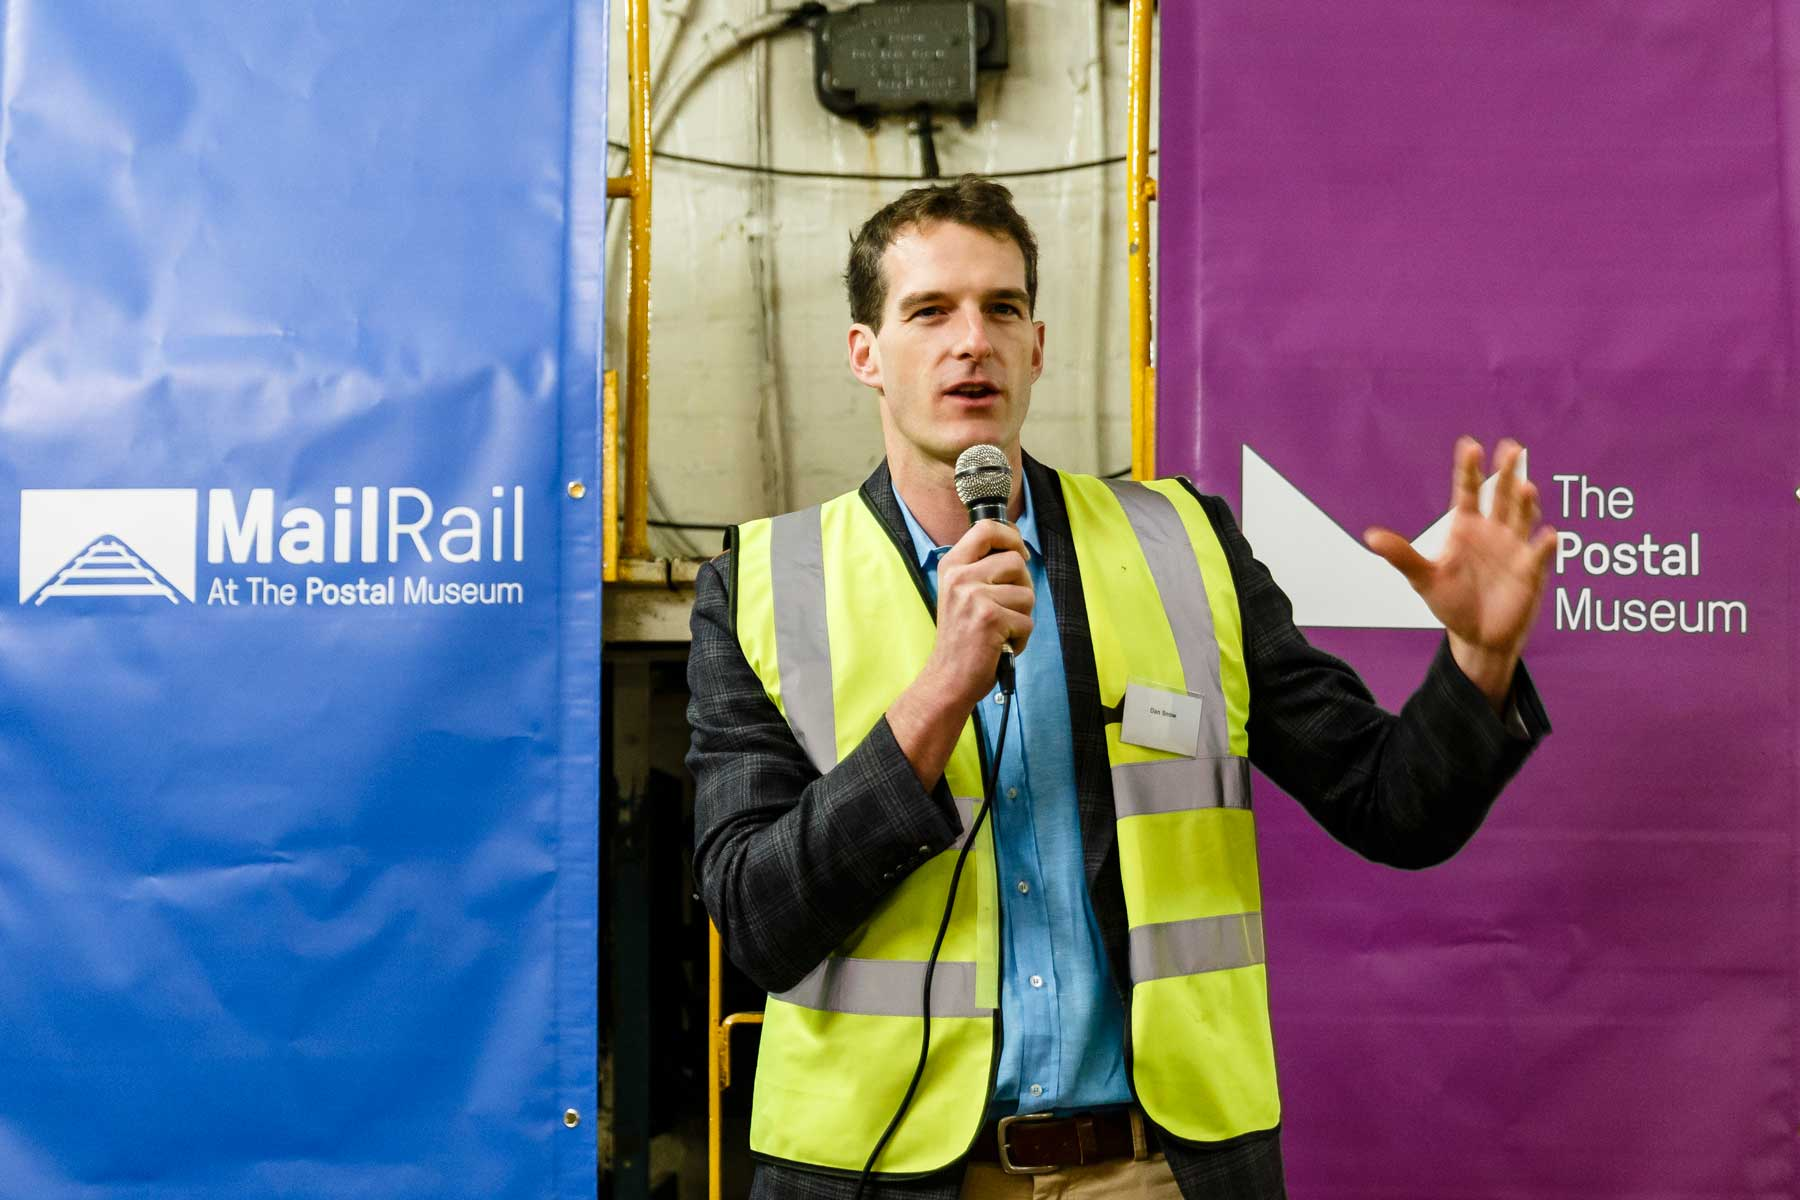 Dan Snow explains why Mail Rail is important to him